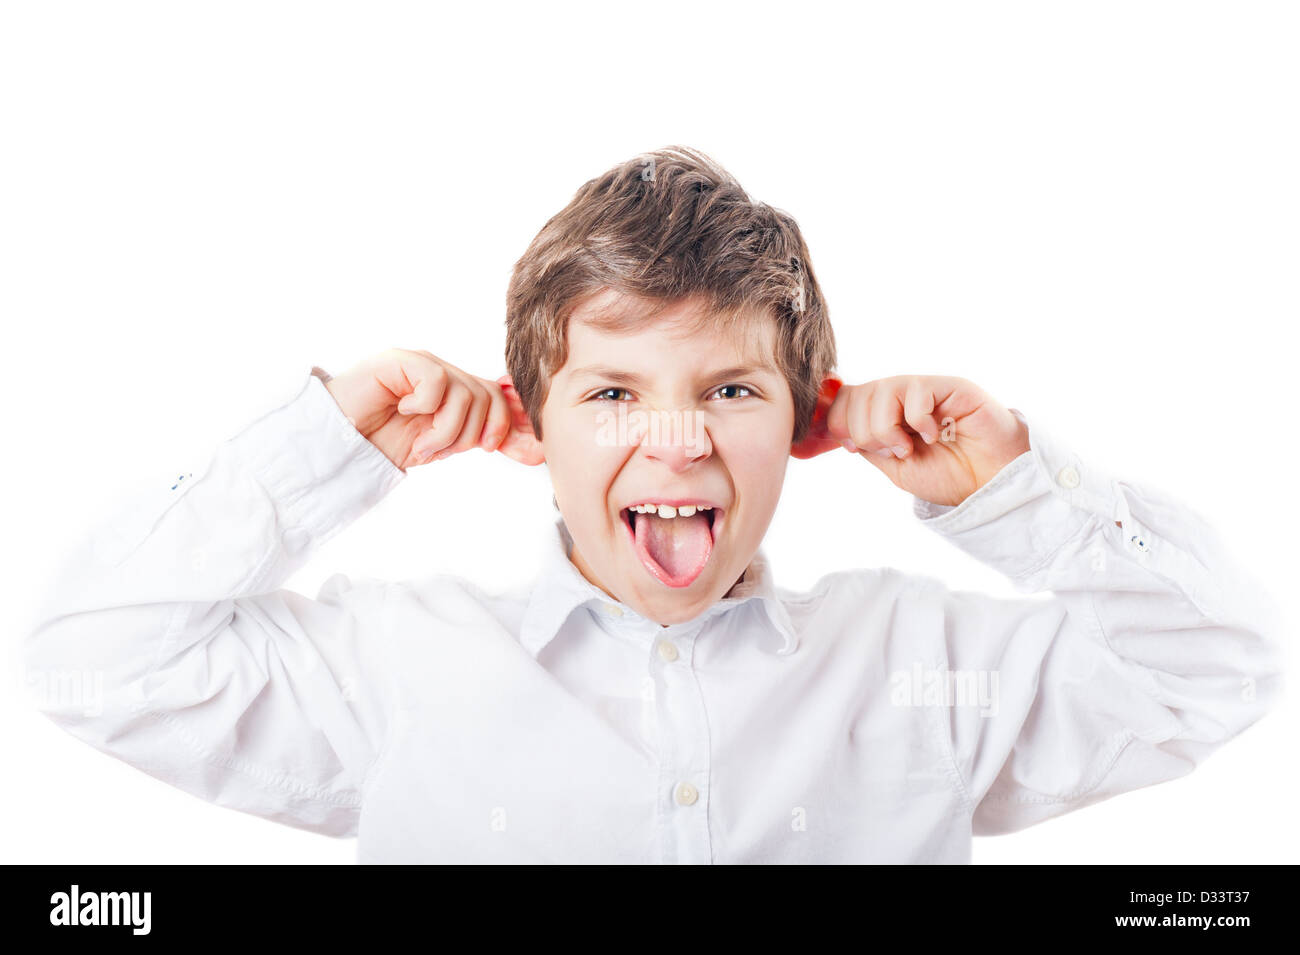 grimacing European boy from the front in the white shirt on a white background - Stock Image